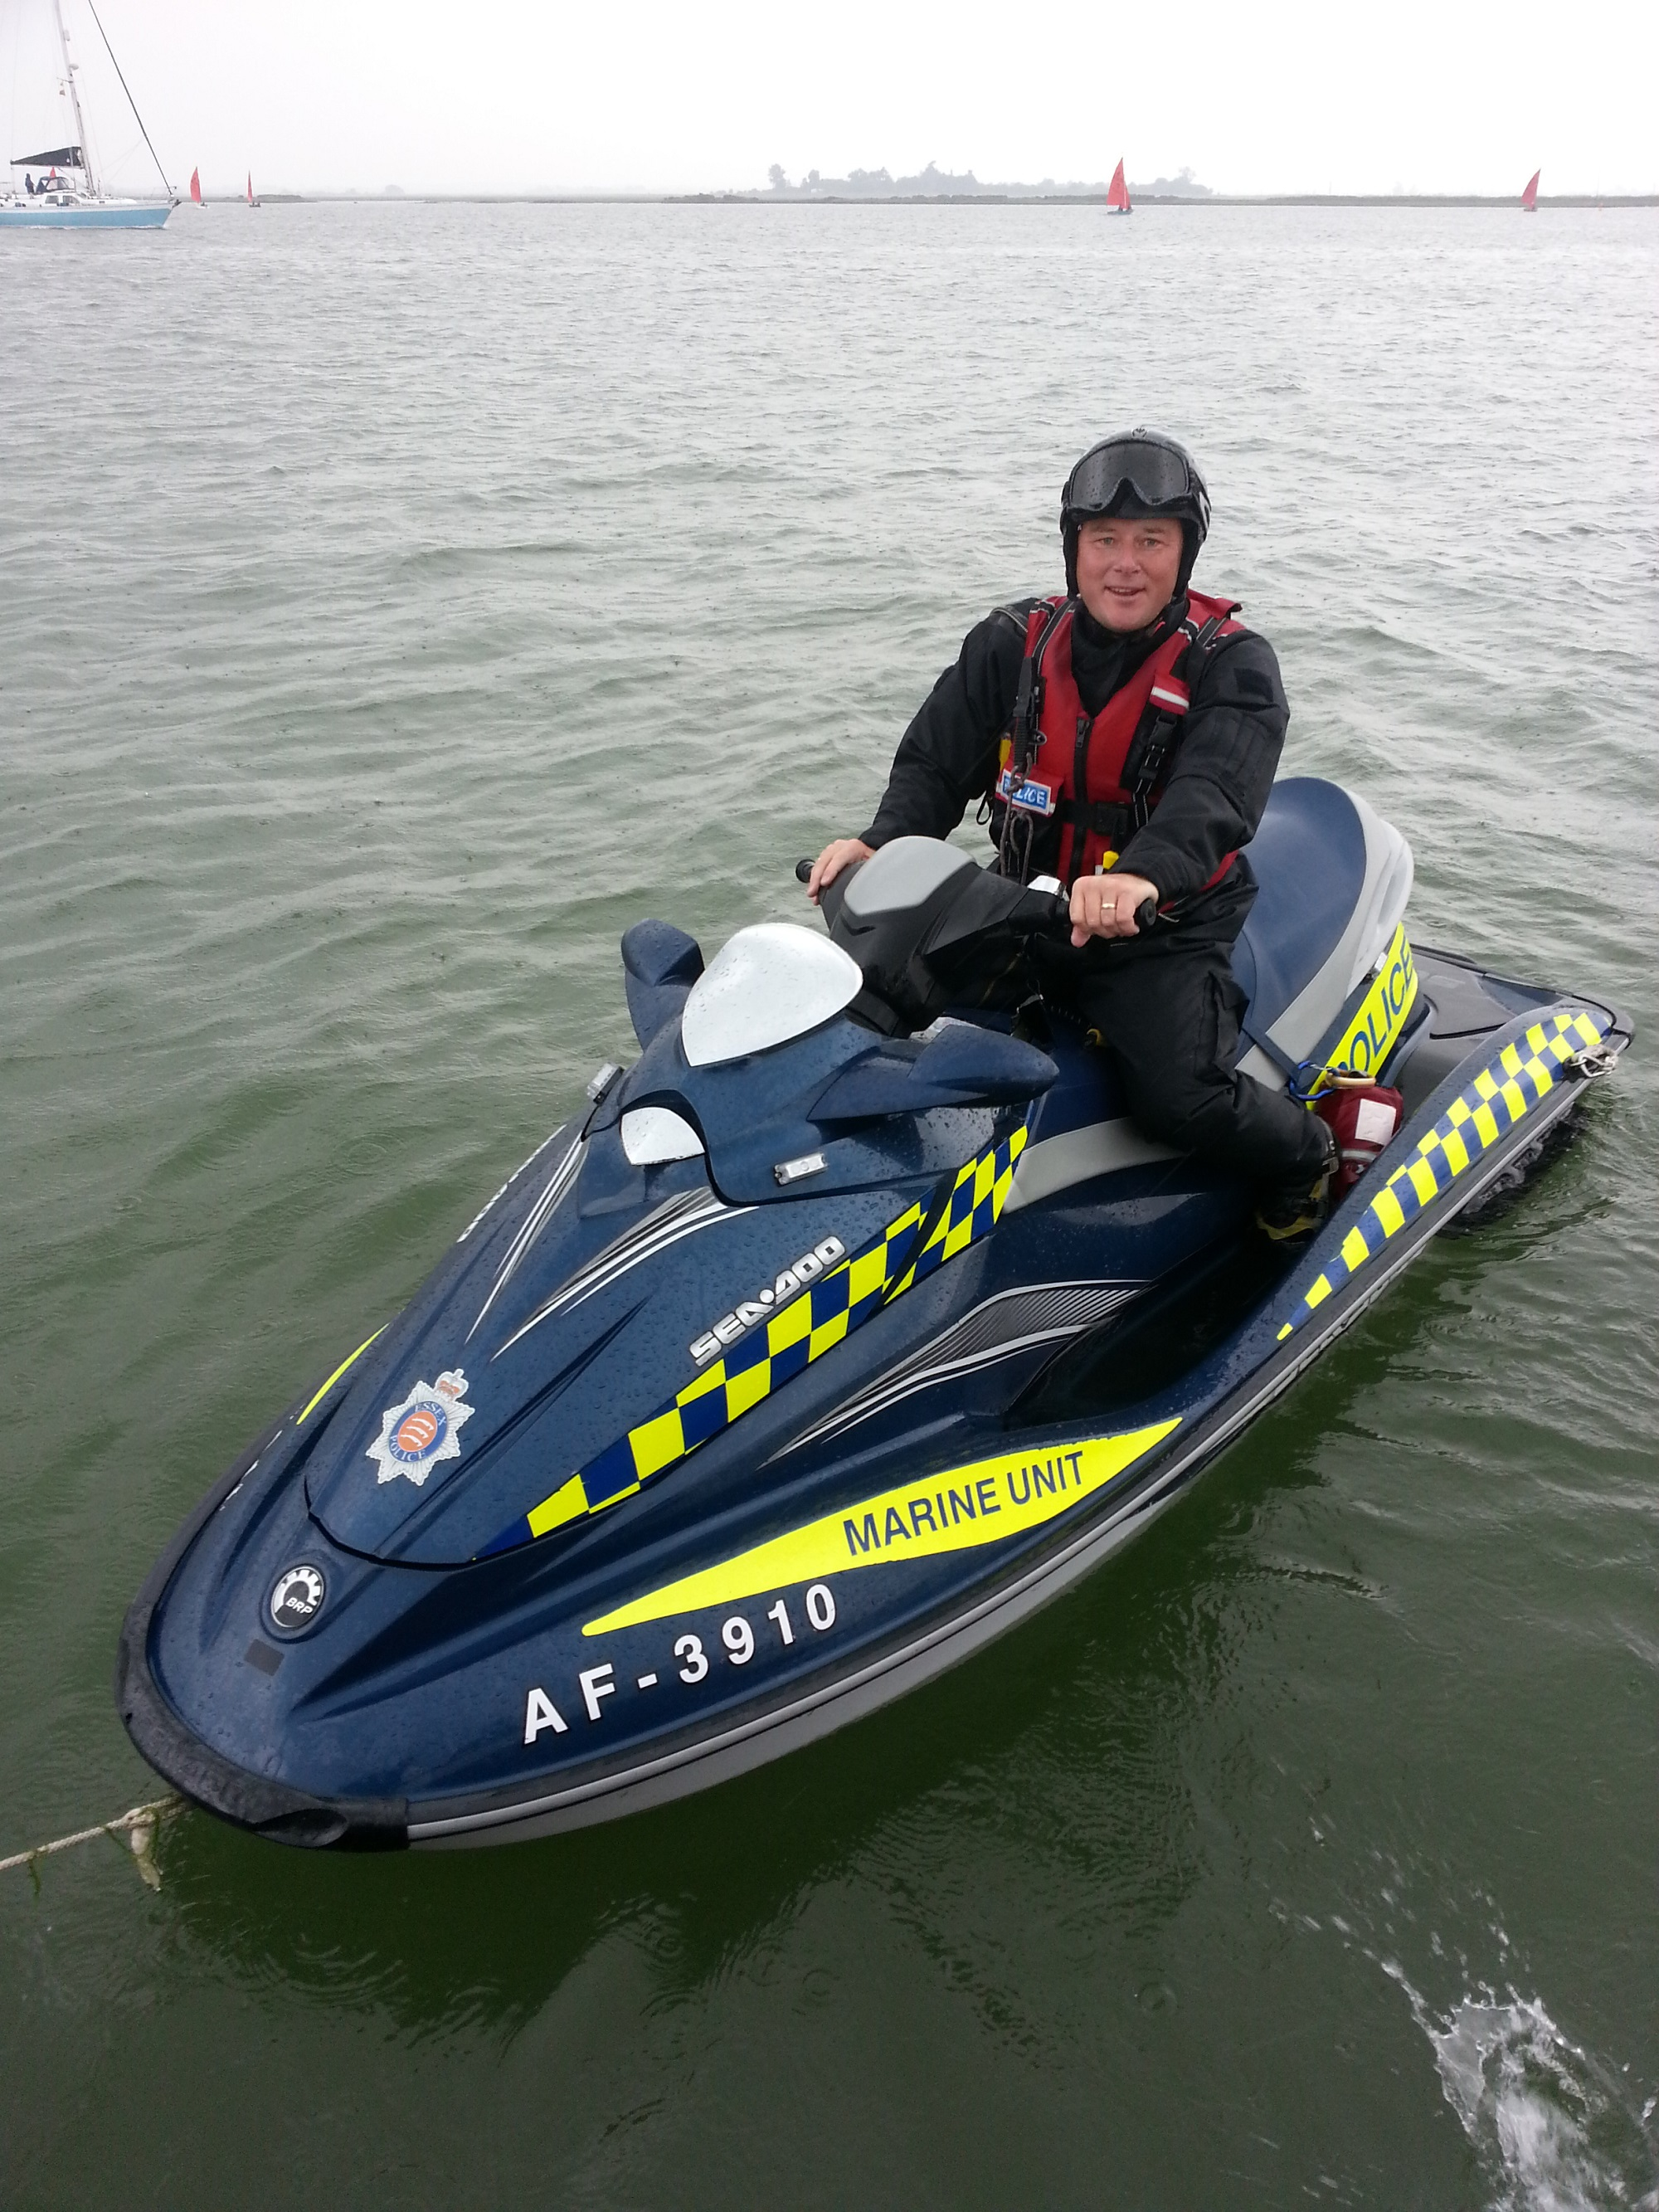 Marine police officer Simon Lofting